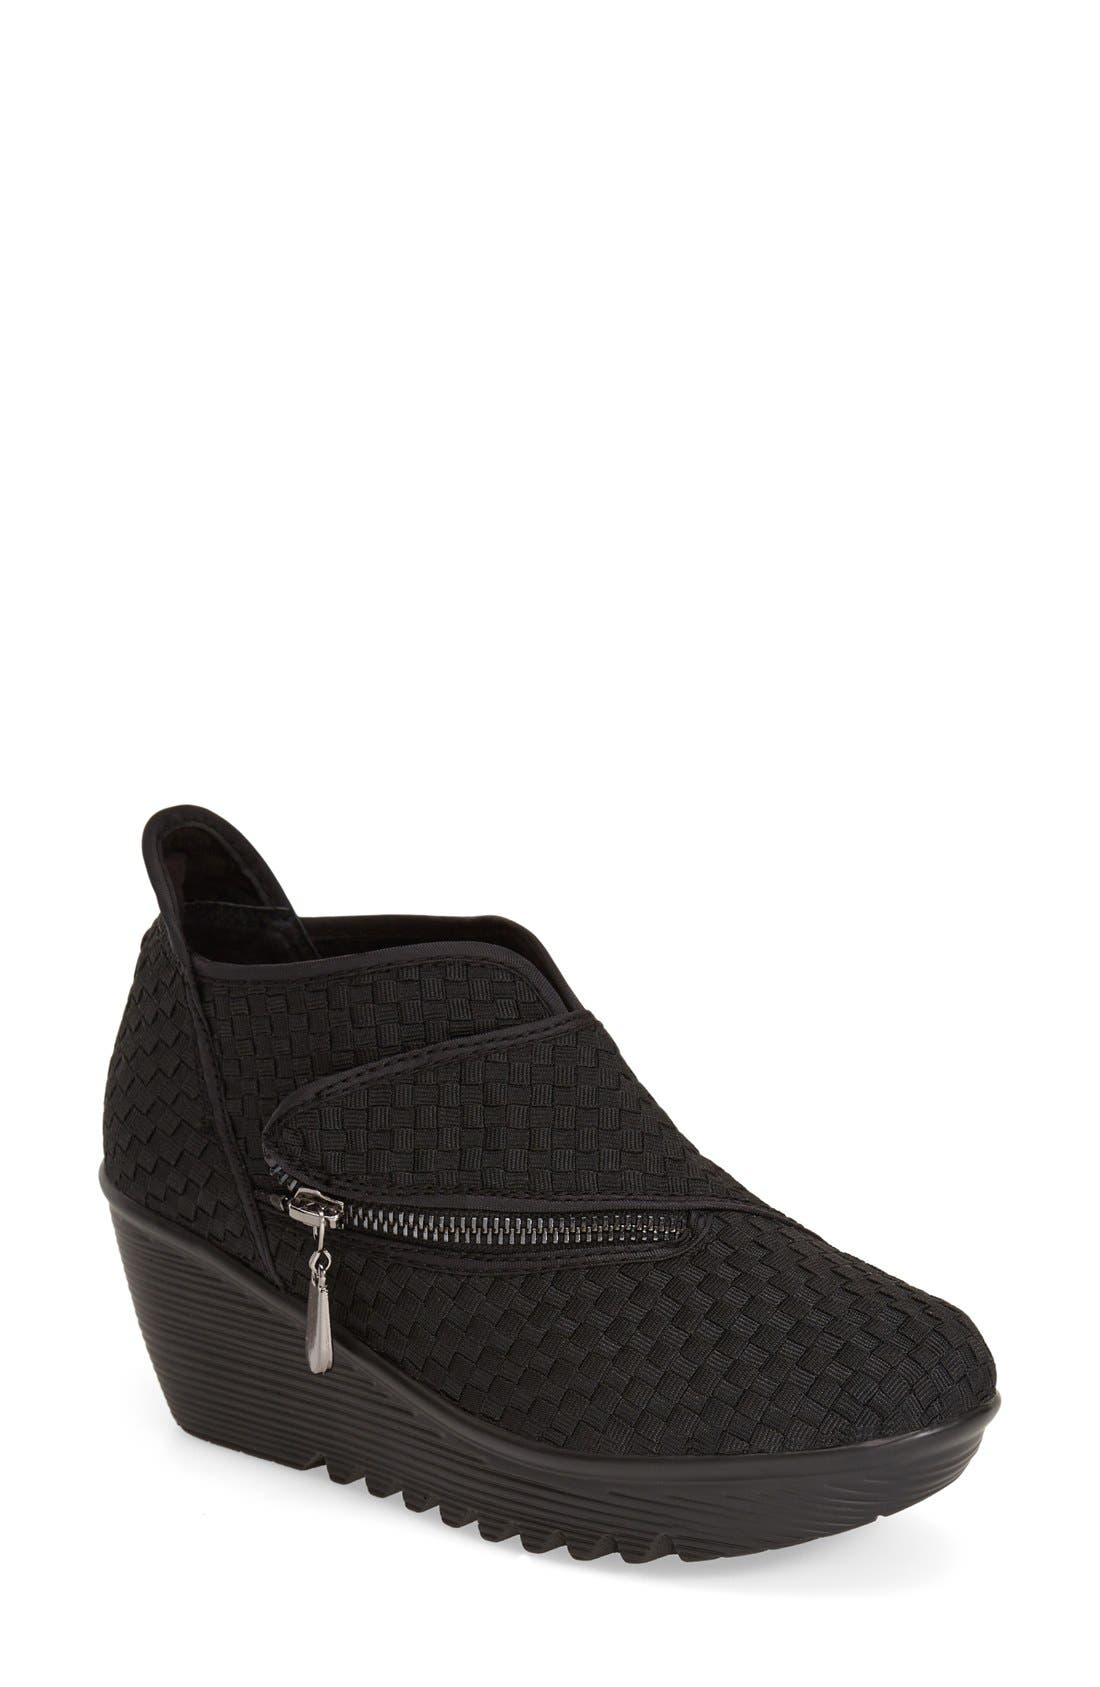 BERNIE MEV. 'ZigZag' Wedge Bootie, Main, color, 001